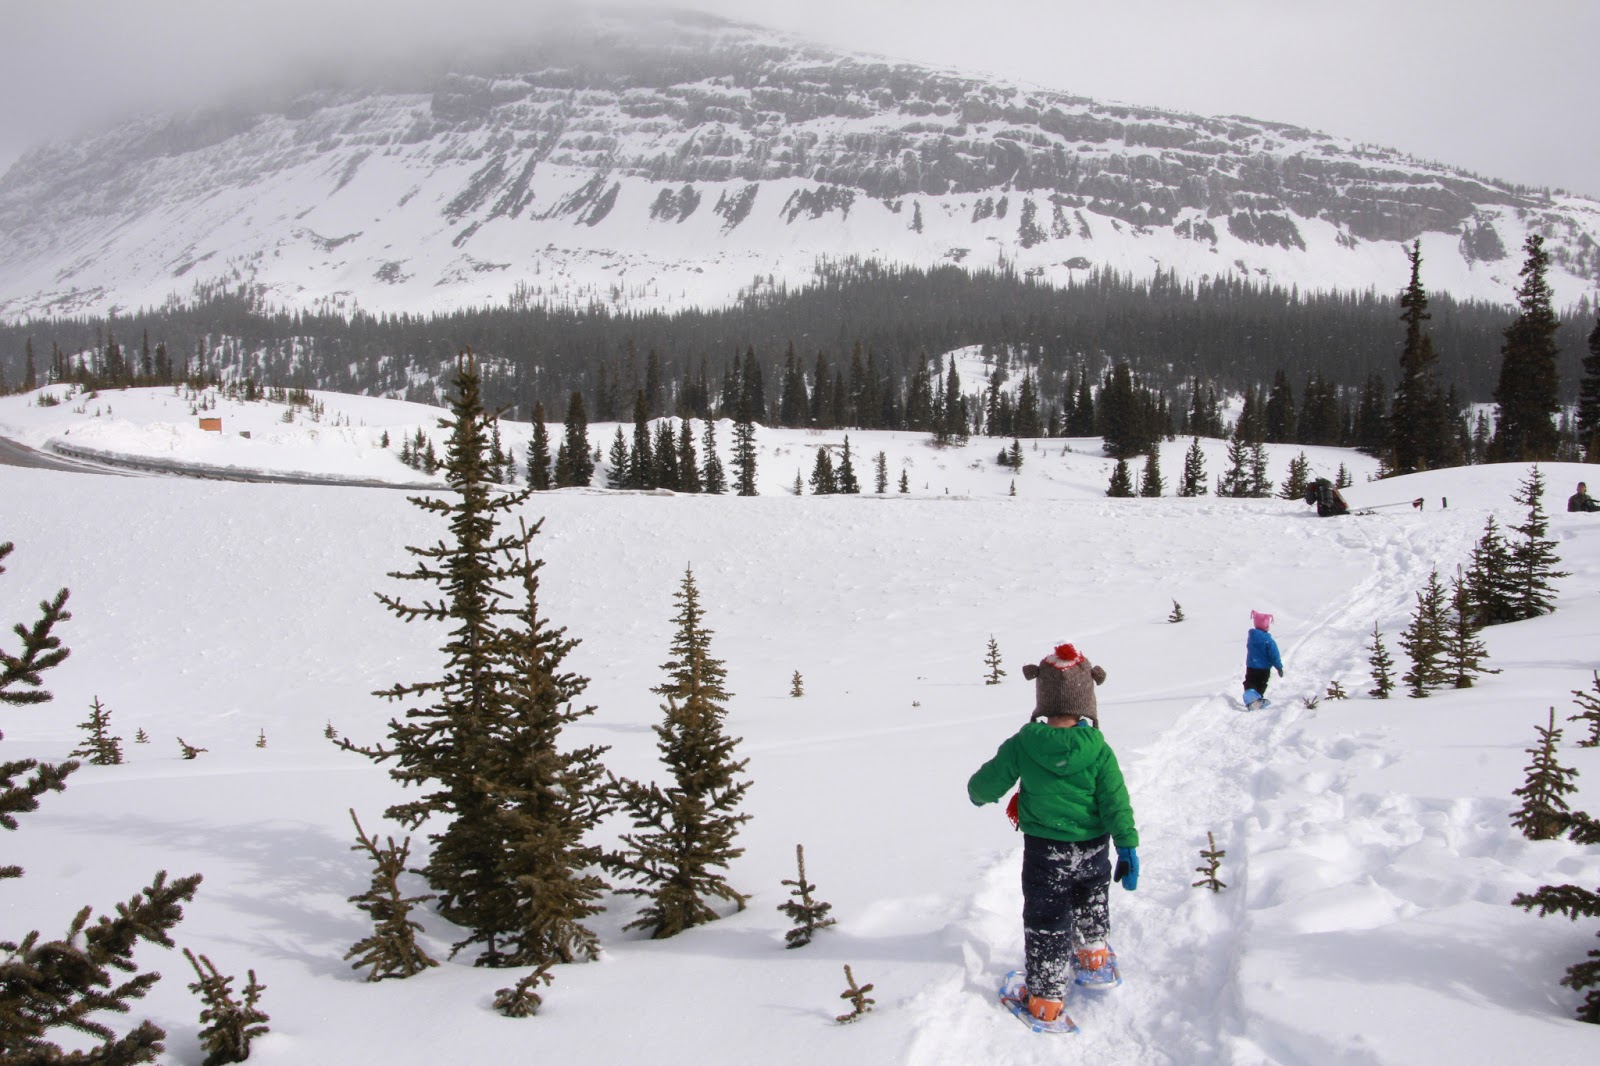 Going snowshoeing with little kids